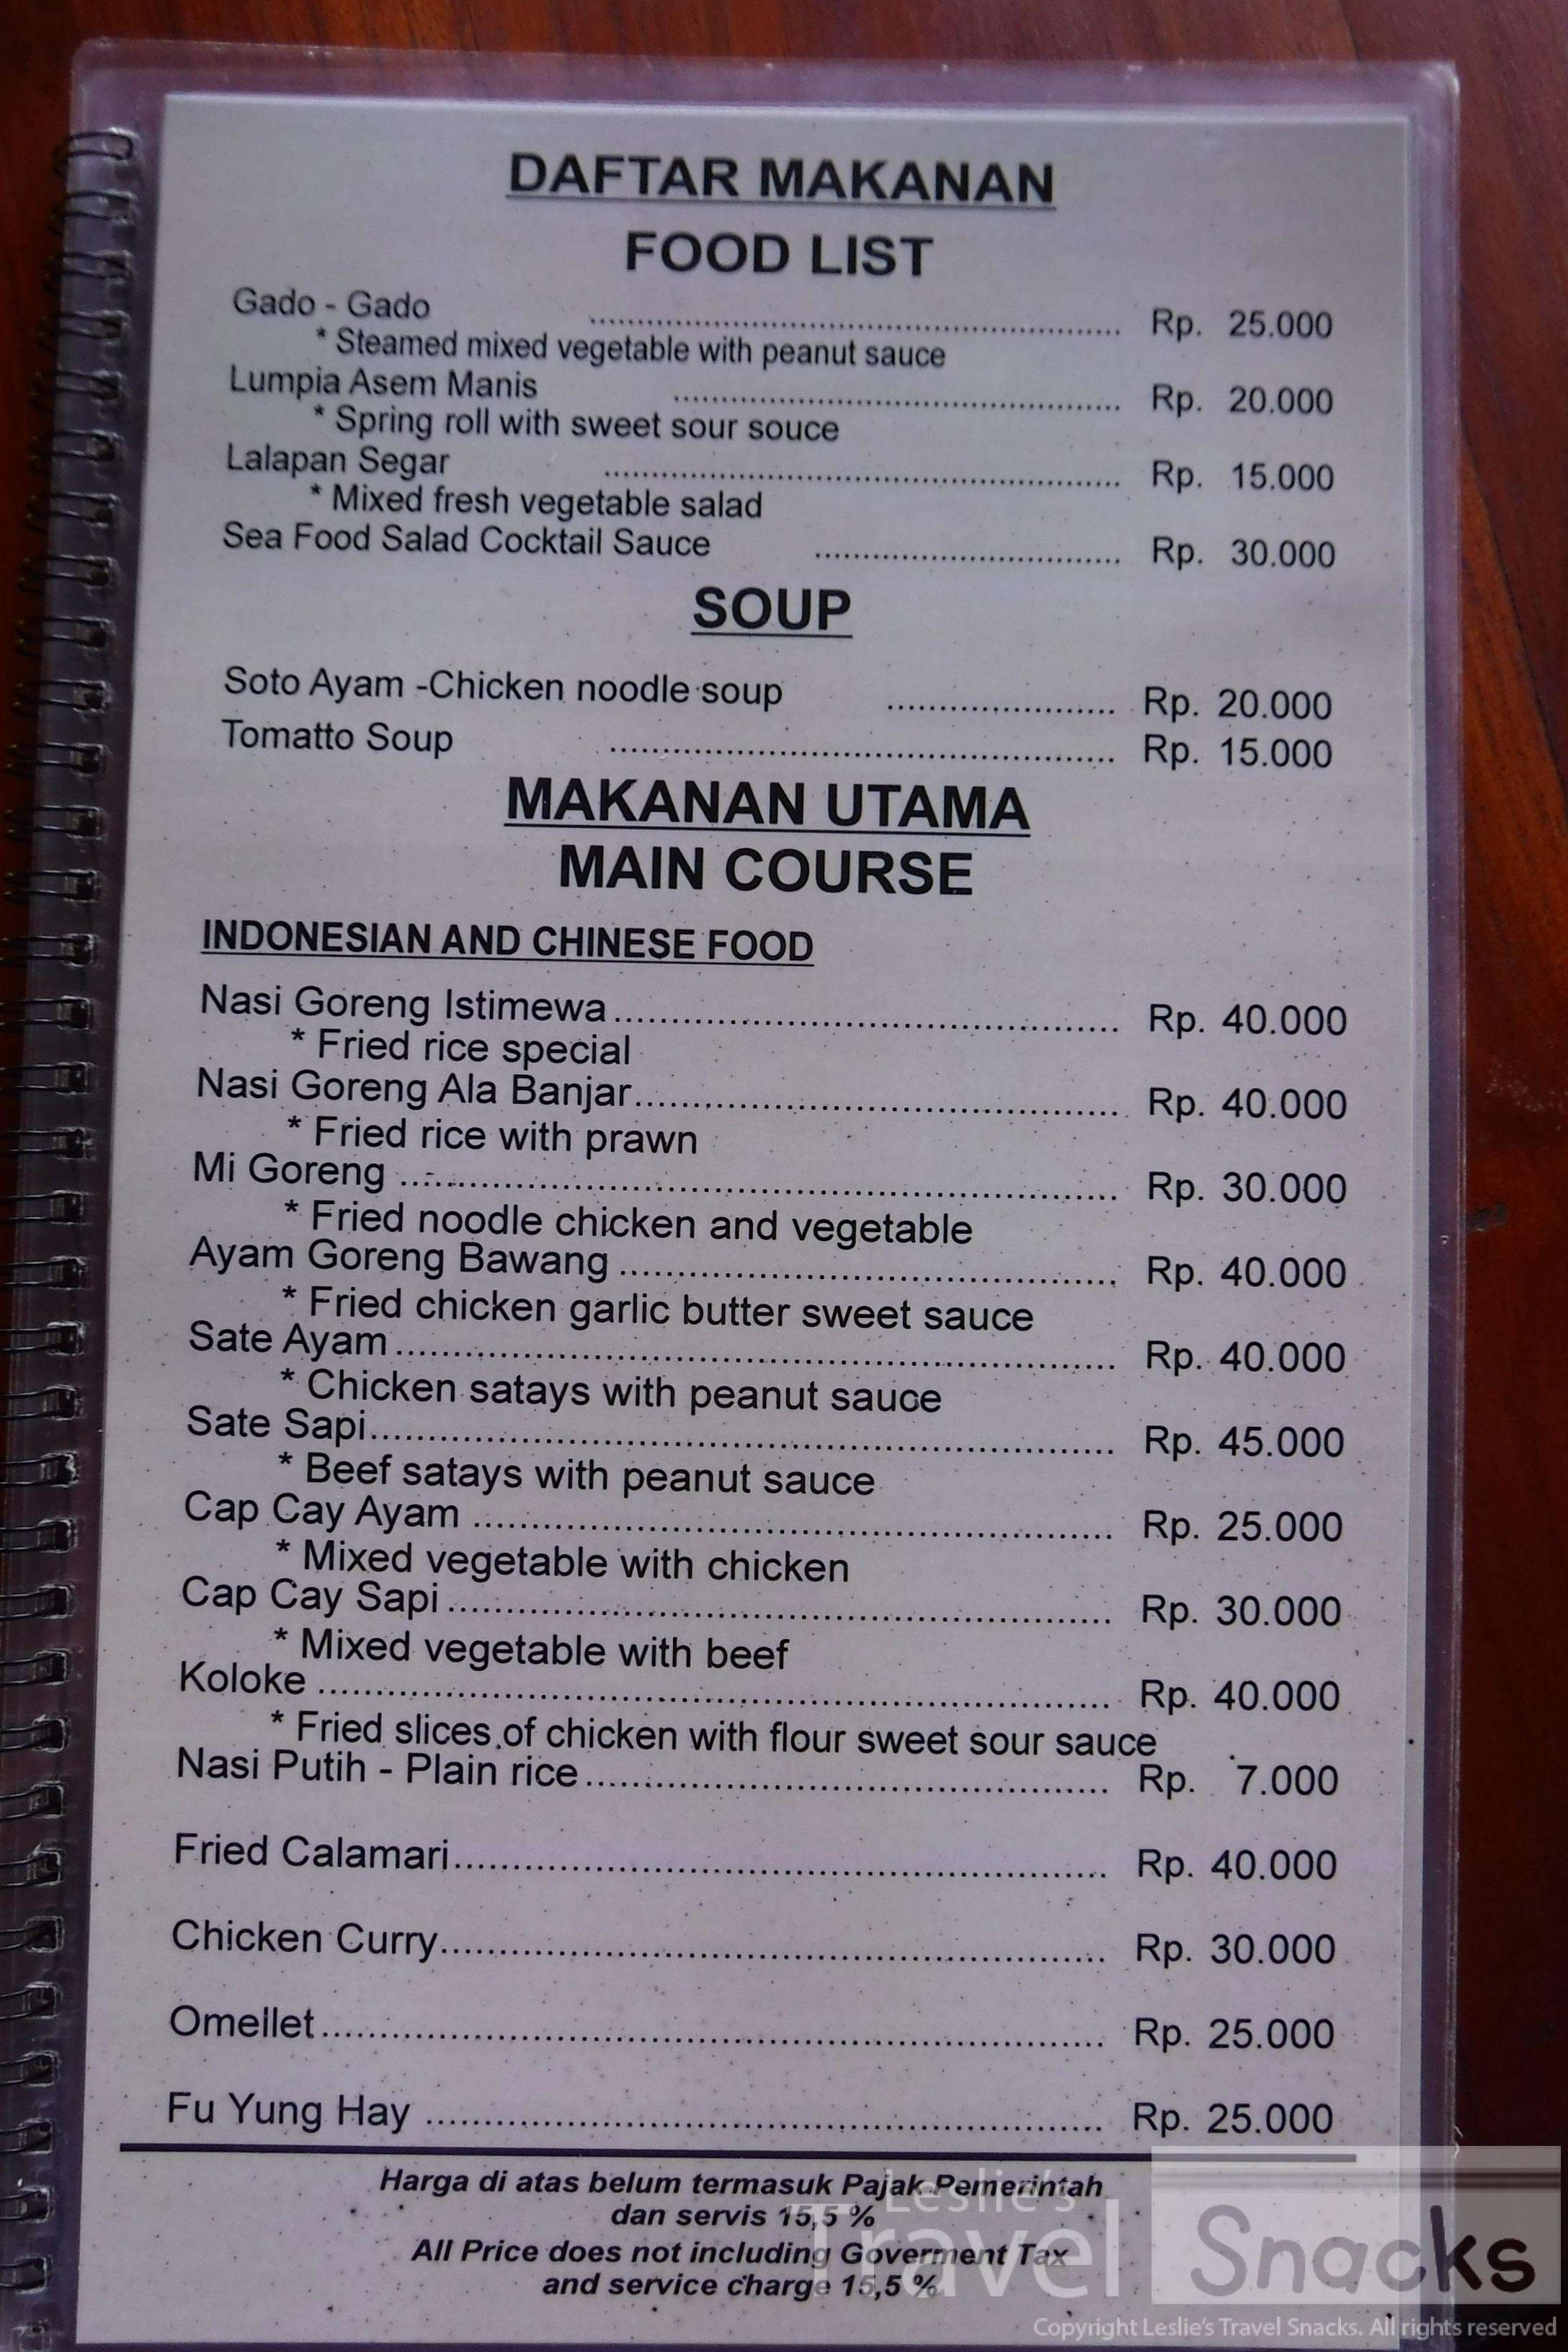 Good selection of local food on the menu at good prices for a tourist attraction.